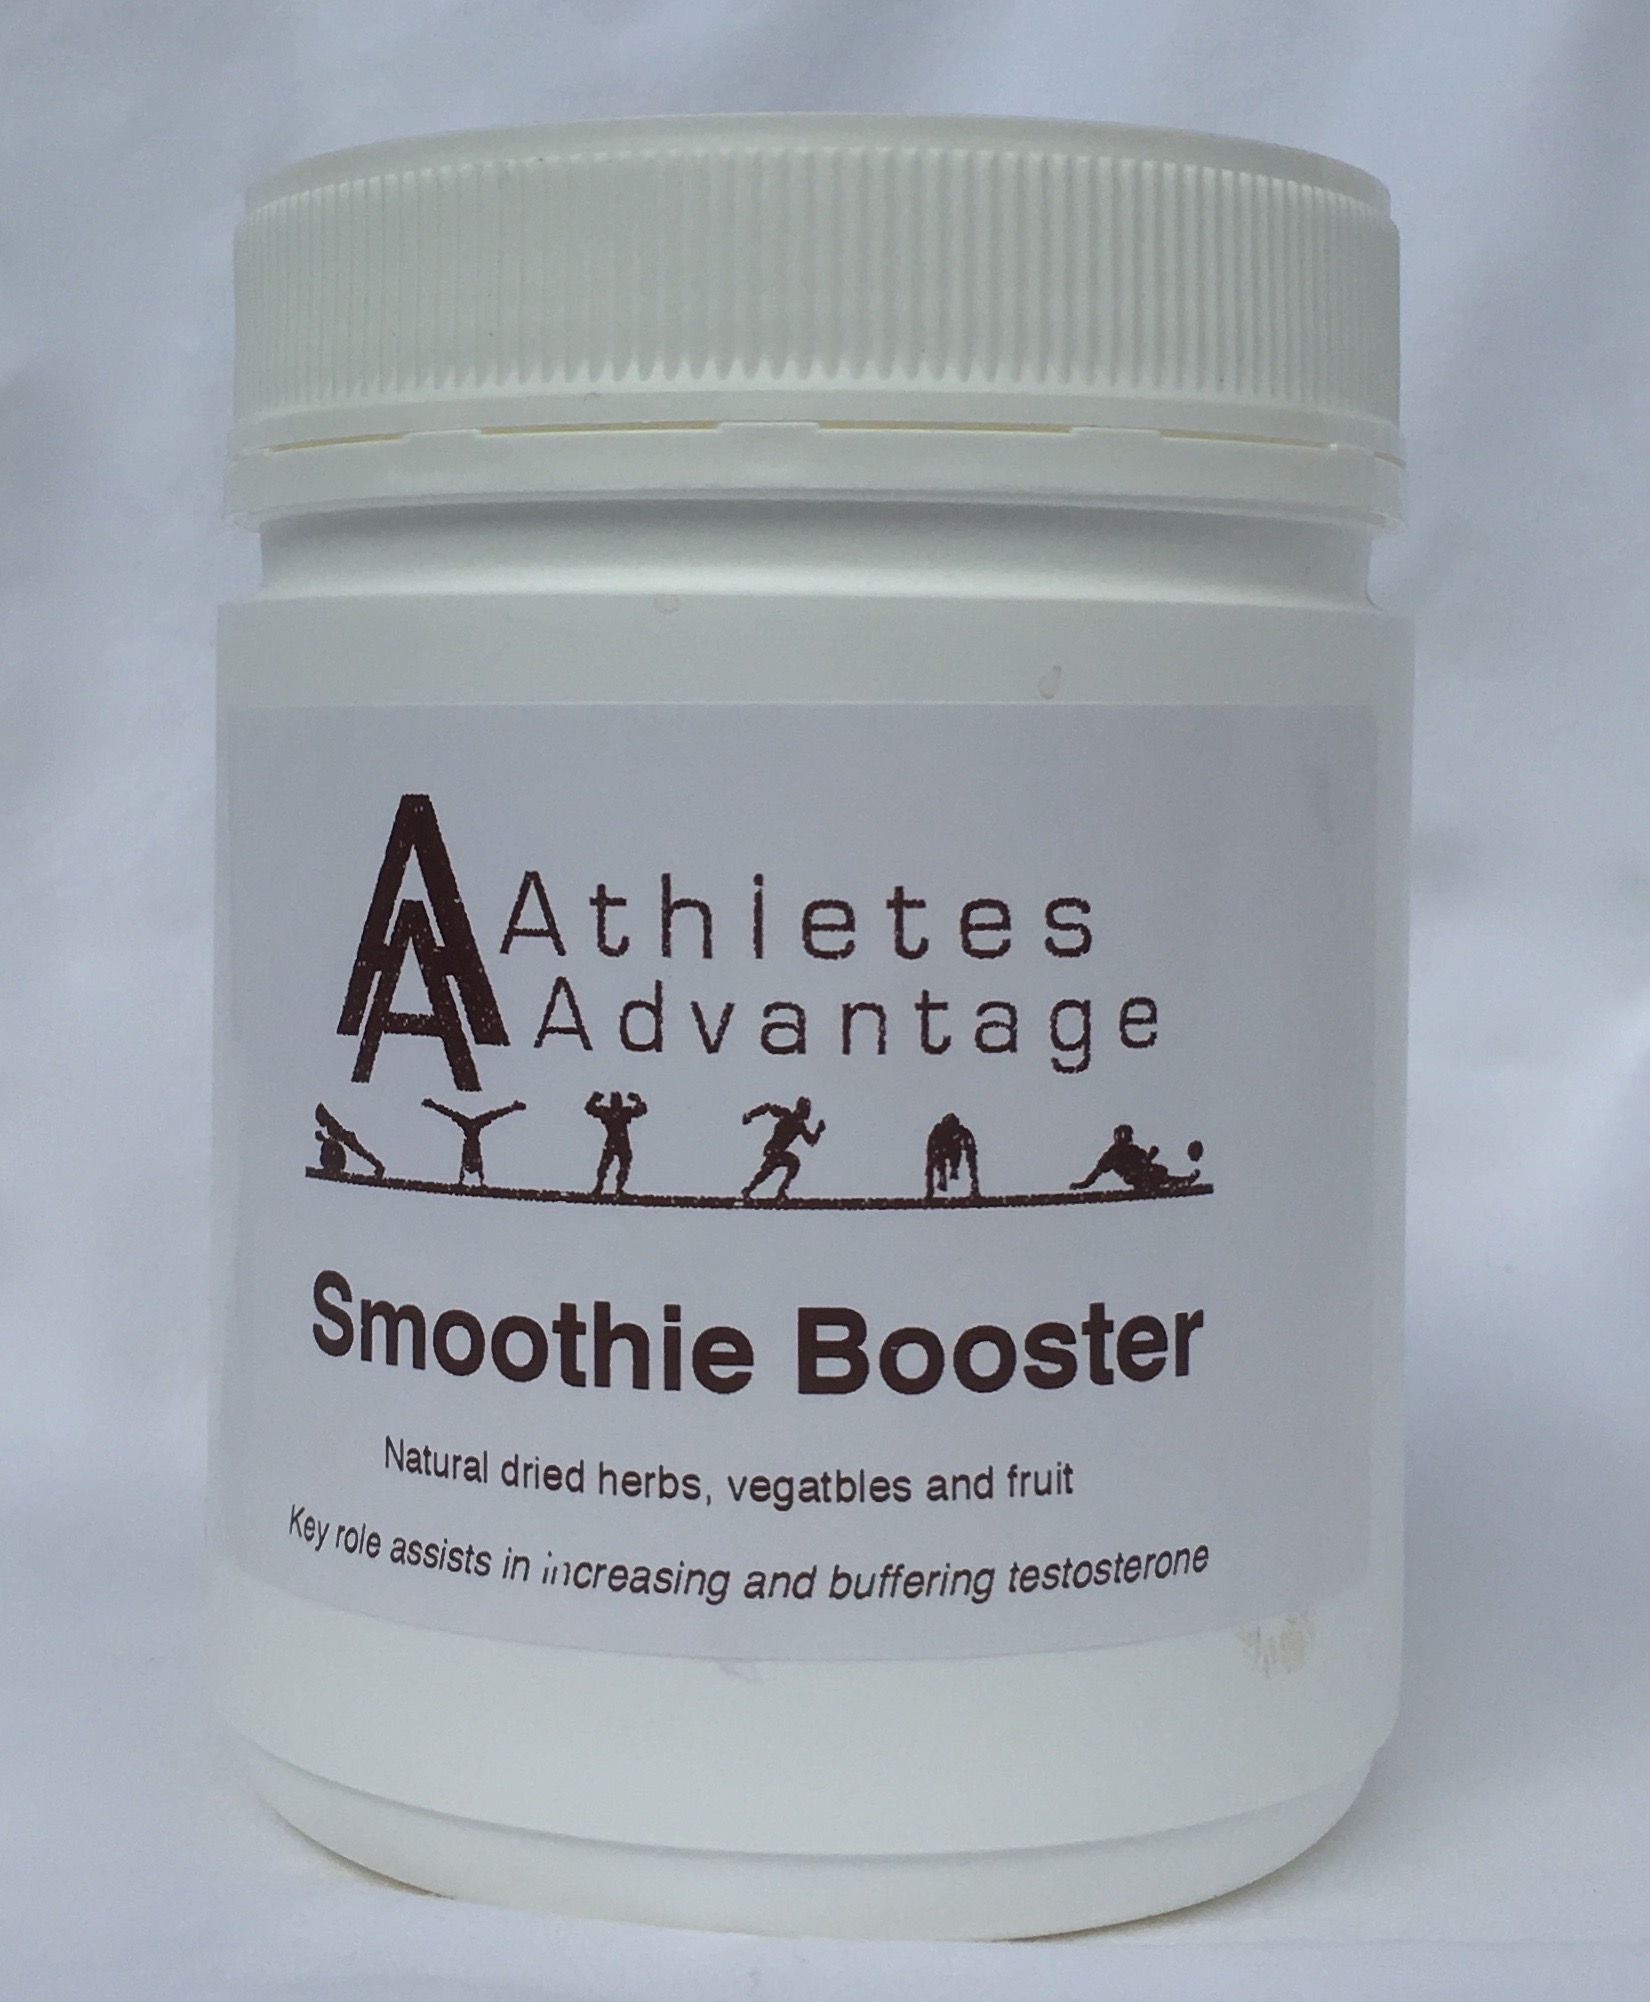 Smoothie Booster